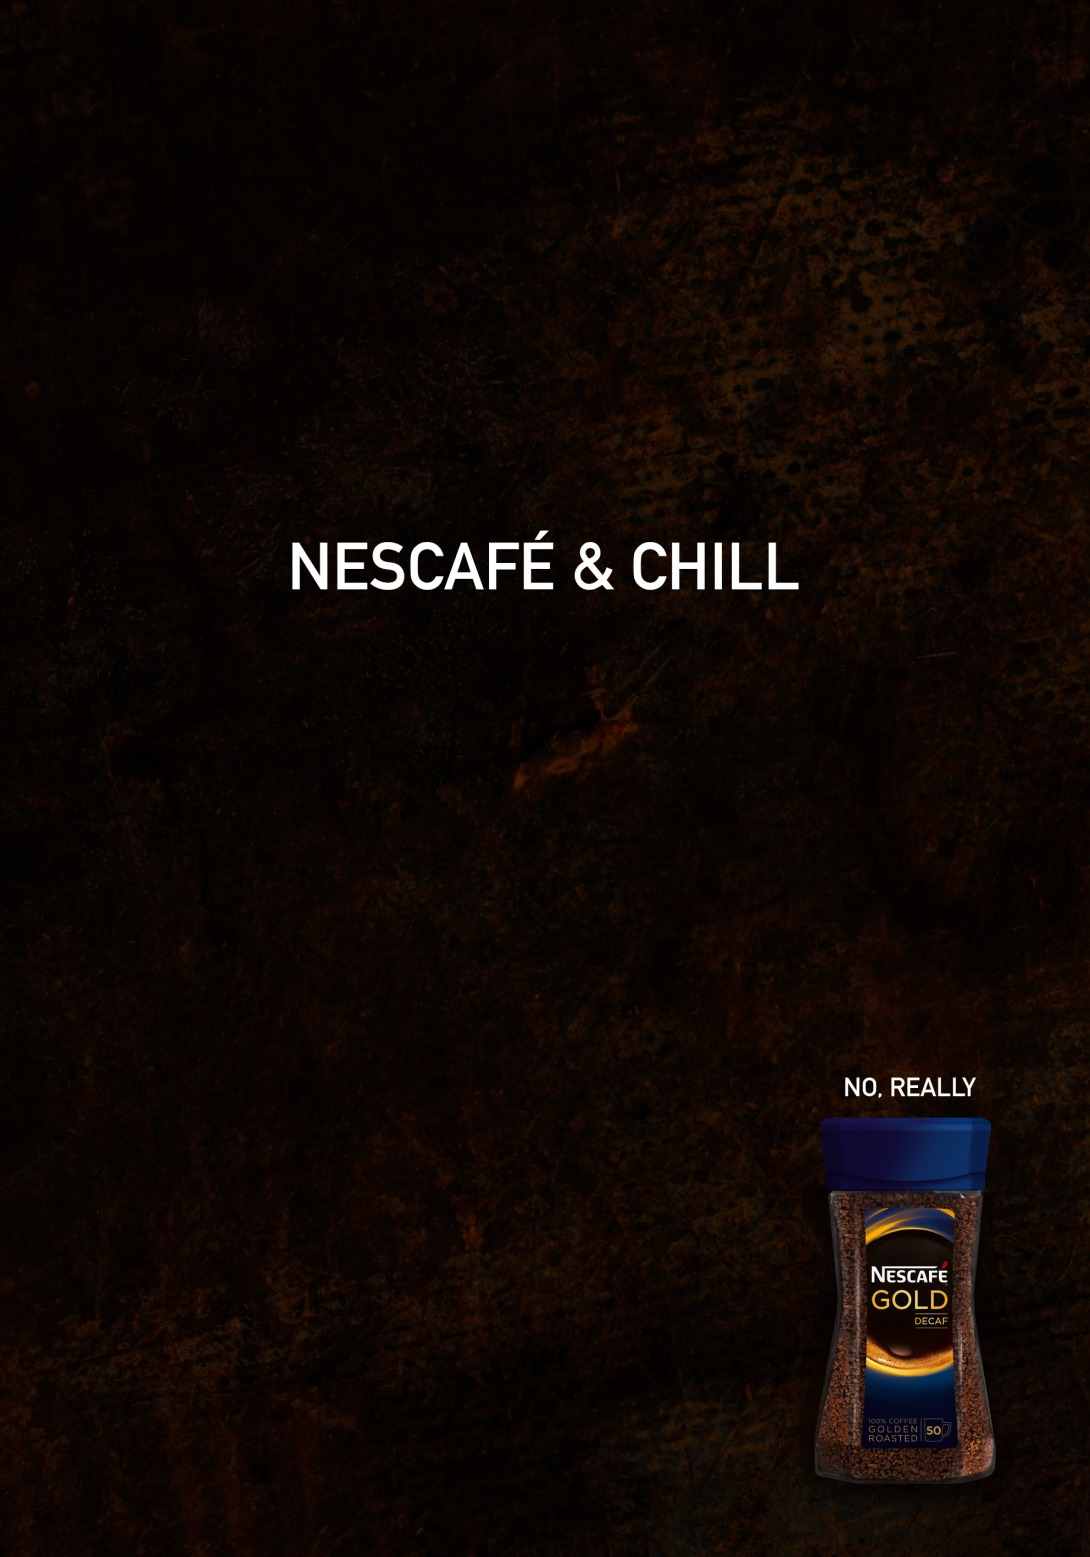 Advertising idea for decaf coffee - nescafe and chill